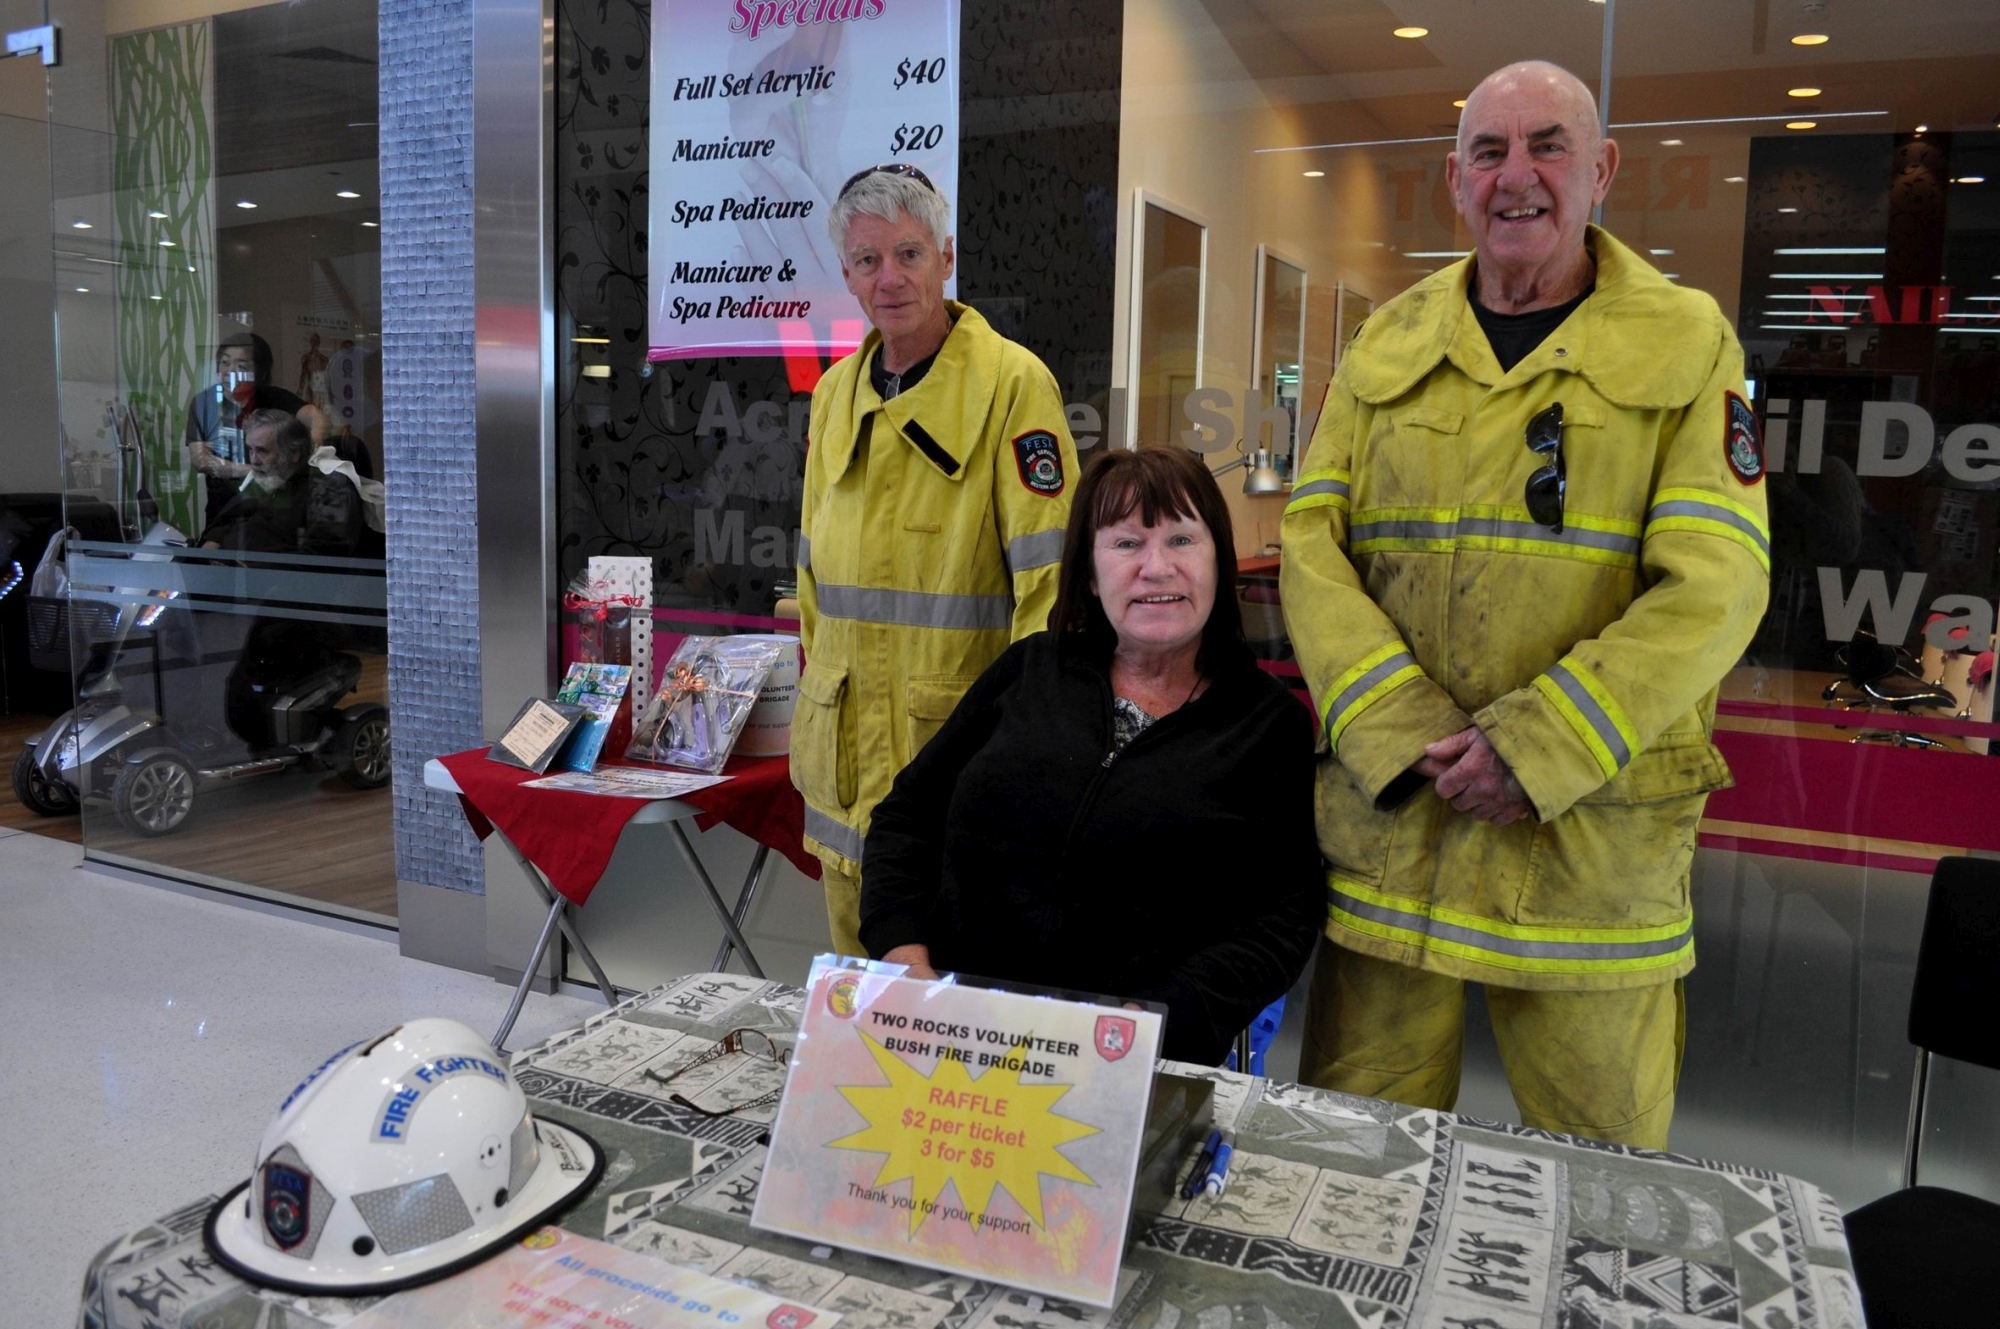 Two Rocks Volunteer Bush Fire Brigade's Derek and Moira Young with Alex Robins selling raffle tickets